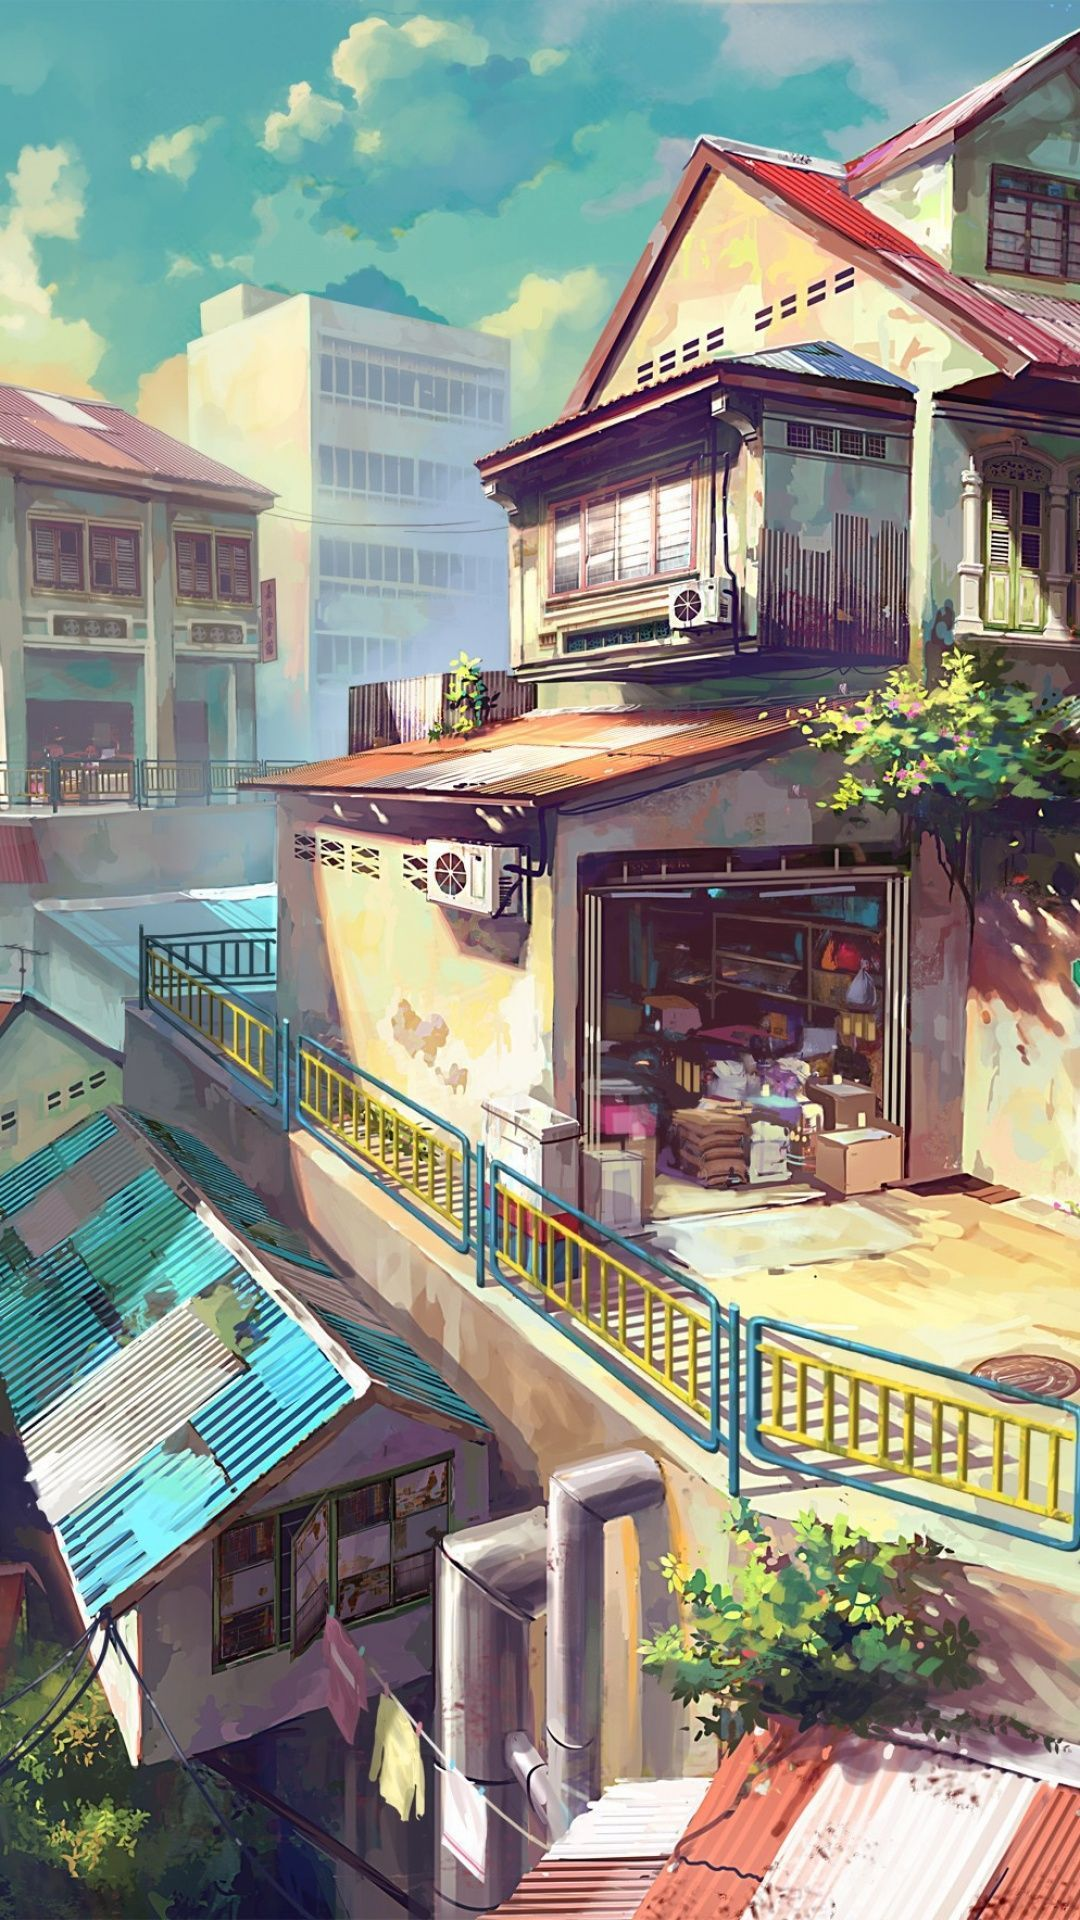 Las Canciones Mas Escuchadas En El Mundo Sazum In 2020 Anime Scenery Wallpaper Anime Scenery Scenery Wallpaper